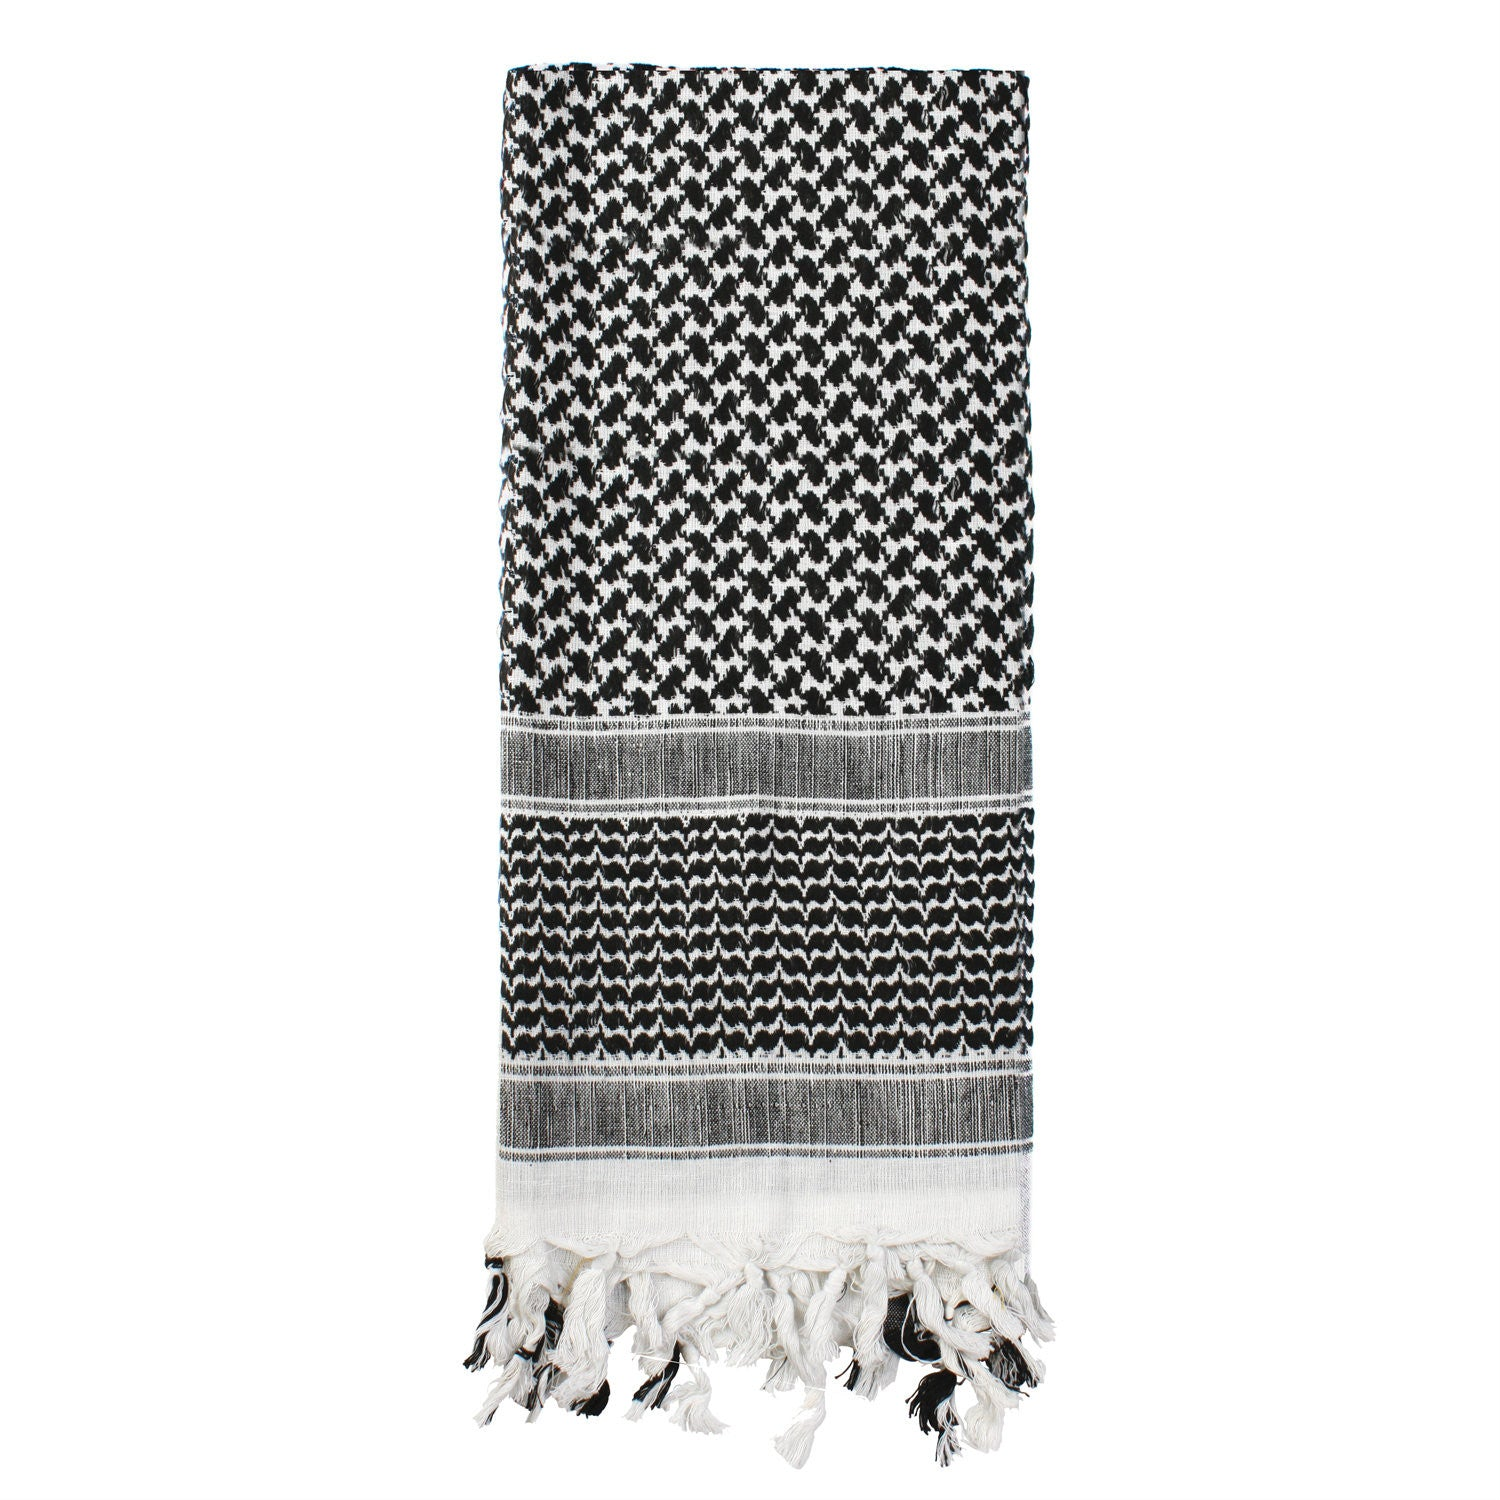 Shemagh Tactical Desert Scarf Black / White